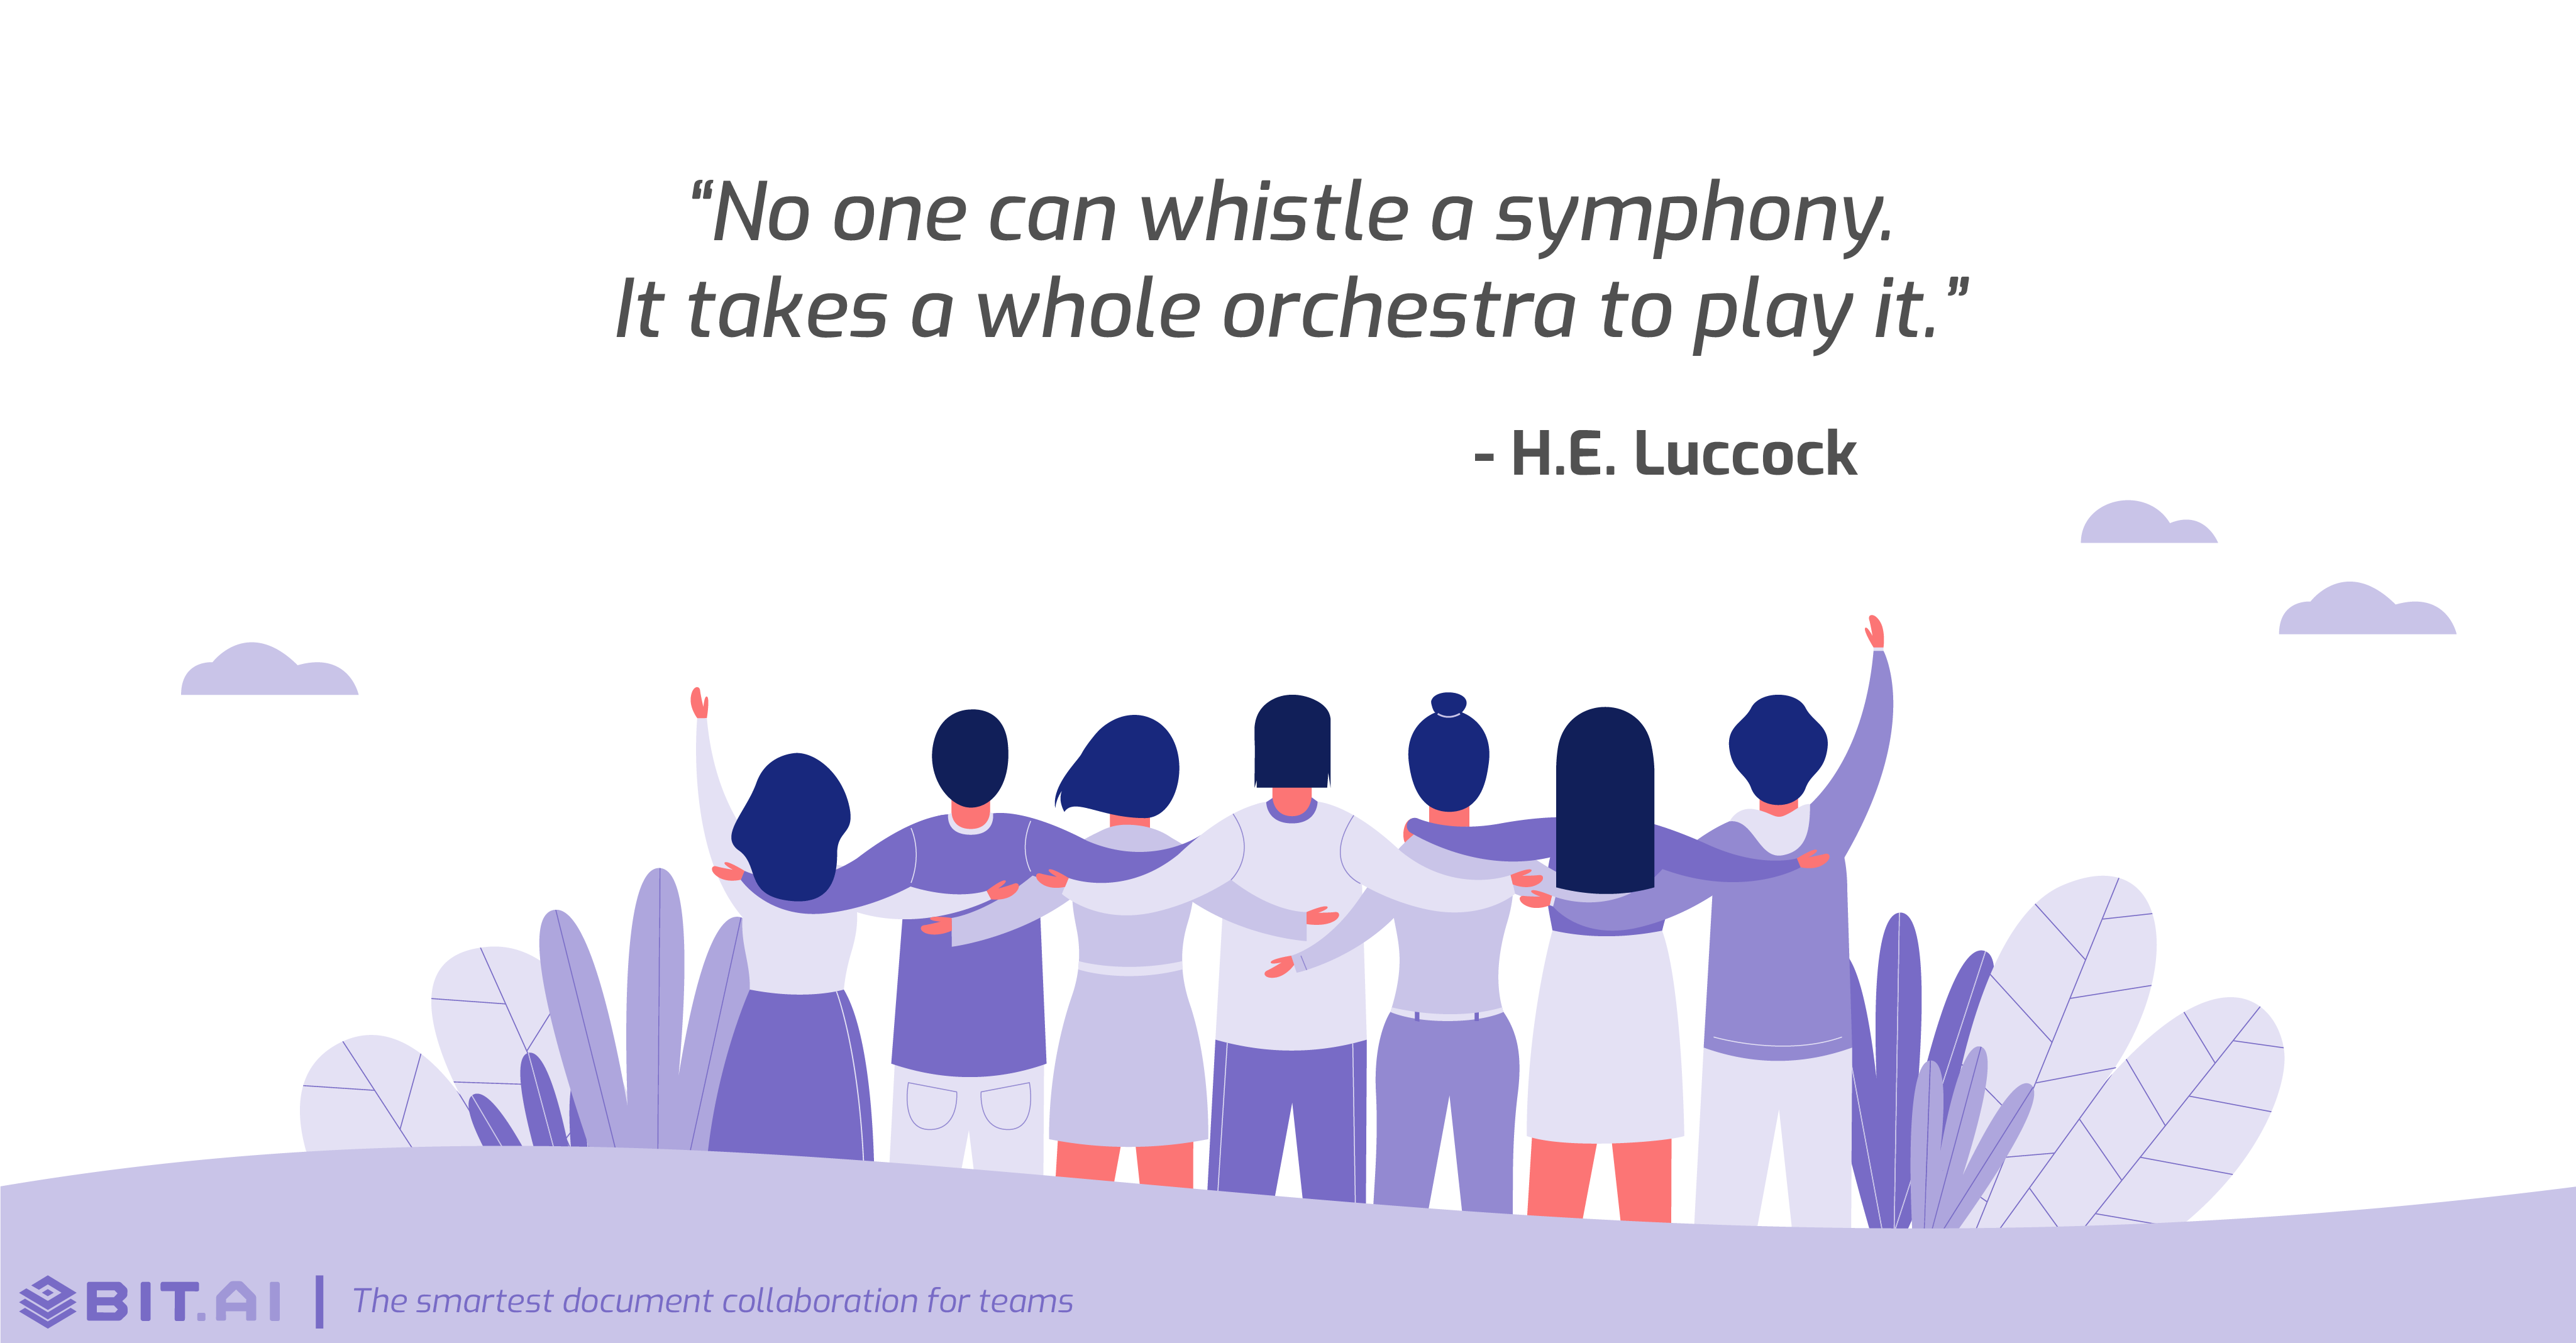 Teamwork collaboration quote by H.E. Luccock